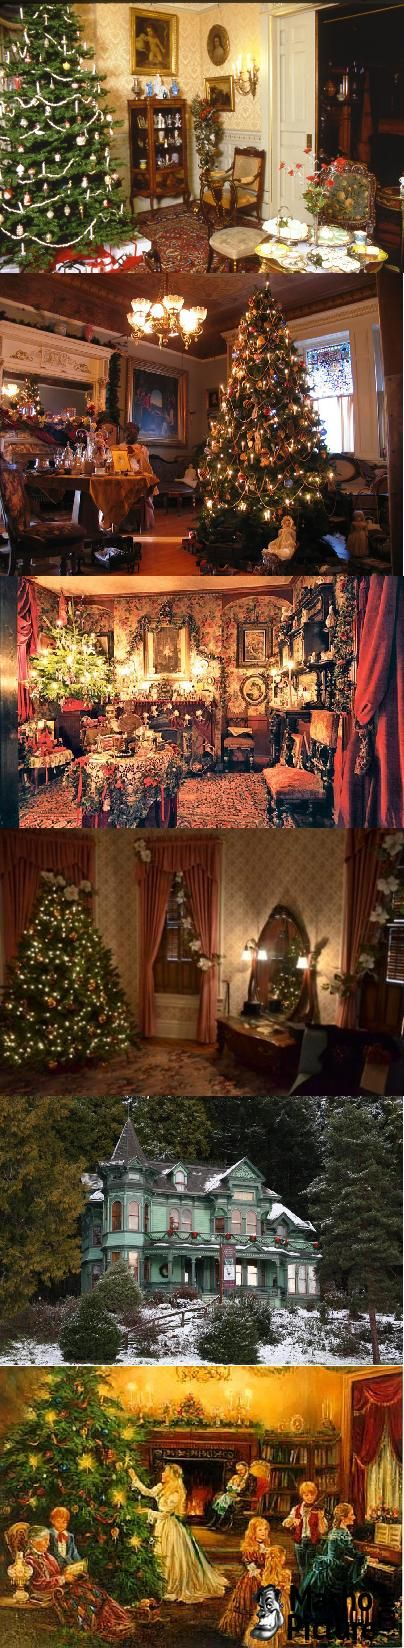 Victorian christmas house - 7 PHOTO!